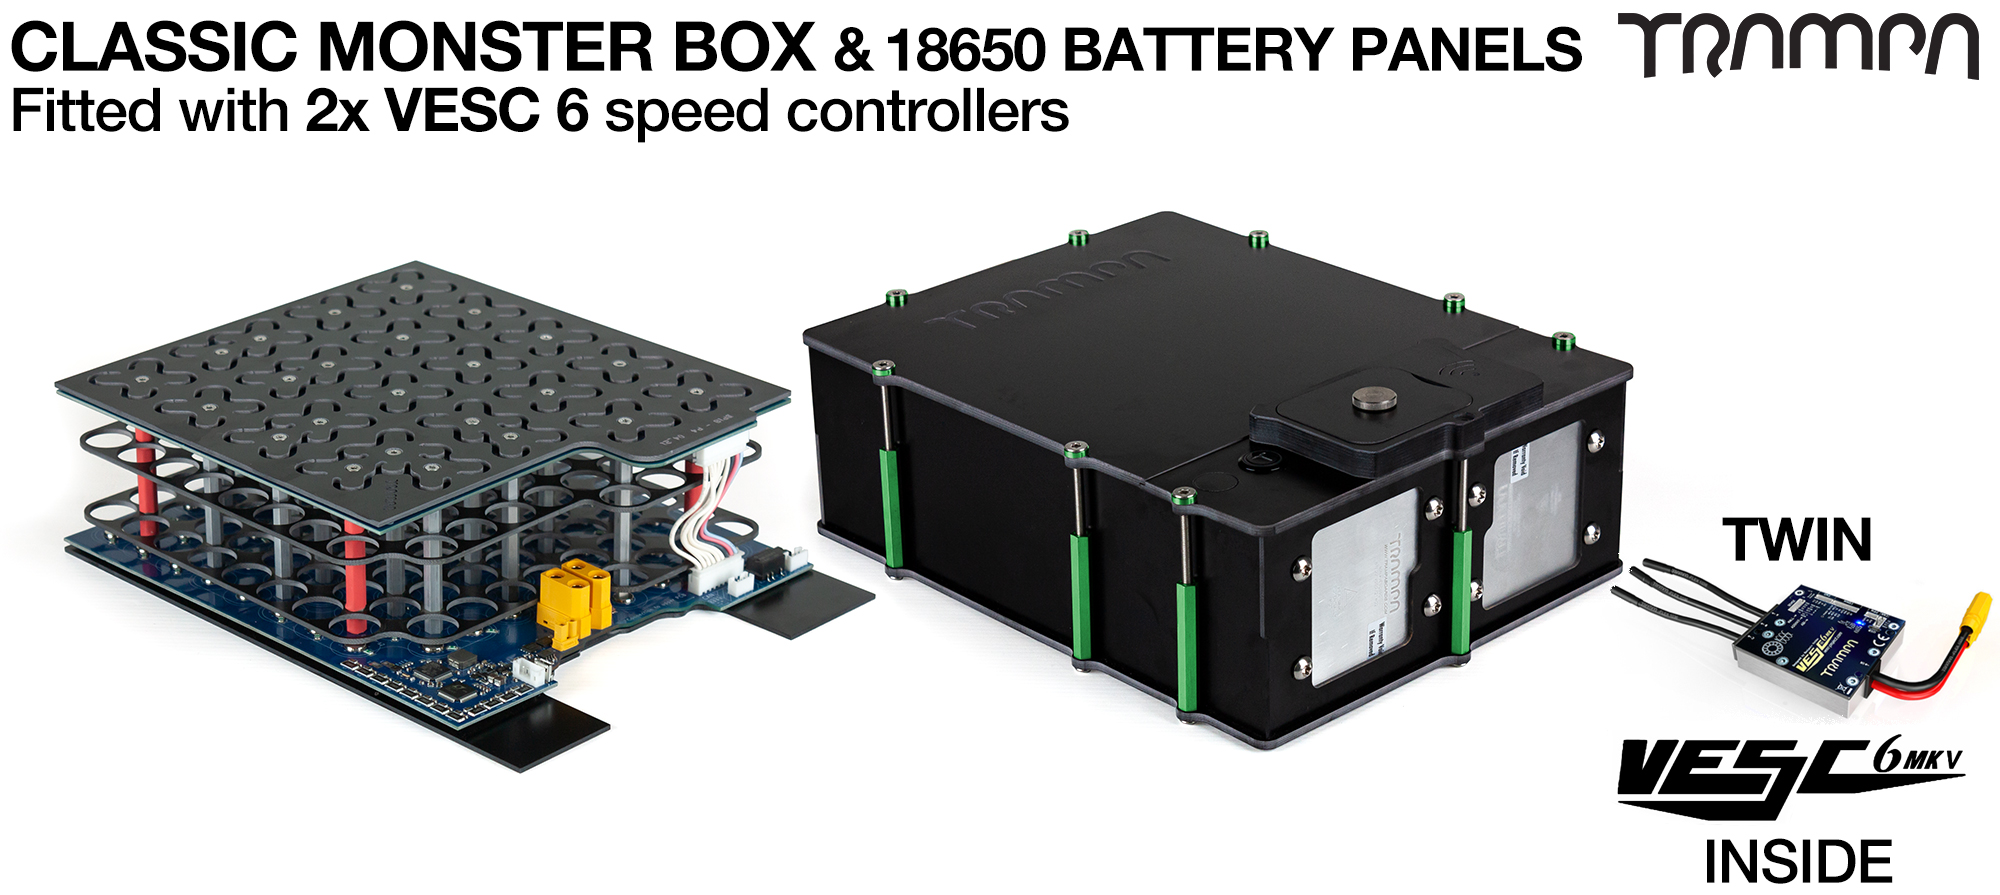 MONSTER Box MkIV - with 18650 PCB Pack & 2x VESC 6 NRF PCB based Battery Pack with Integrated Battery Management System (BMS)  - NO CELLS